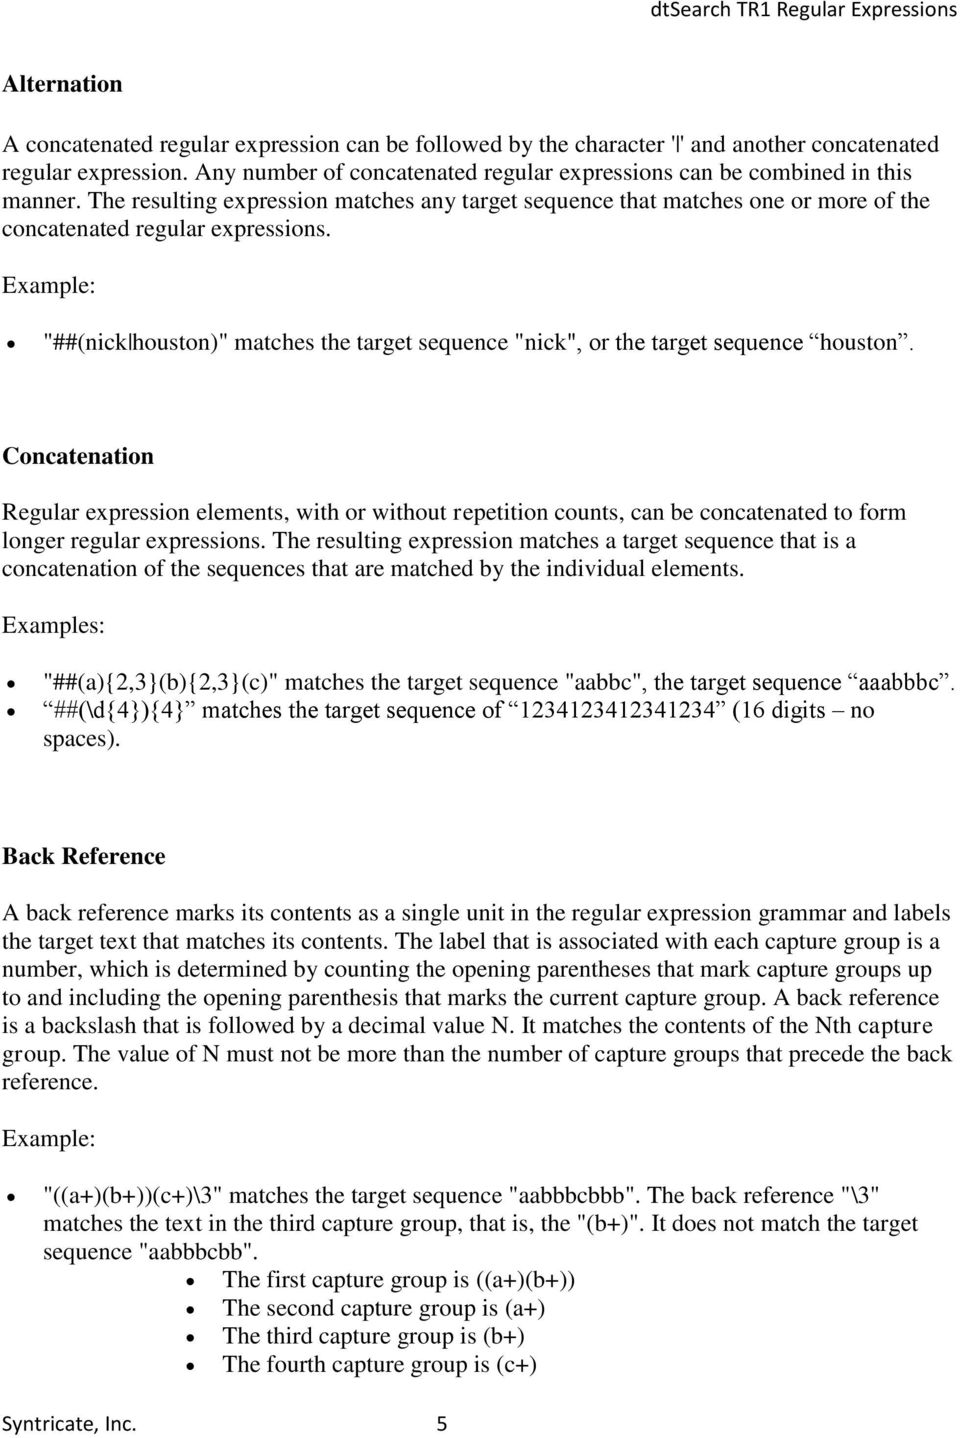 dtsearch Regular Expressions - PDF